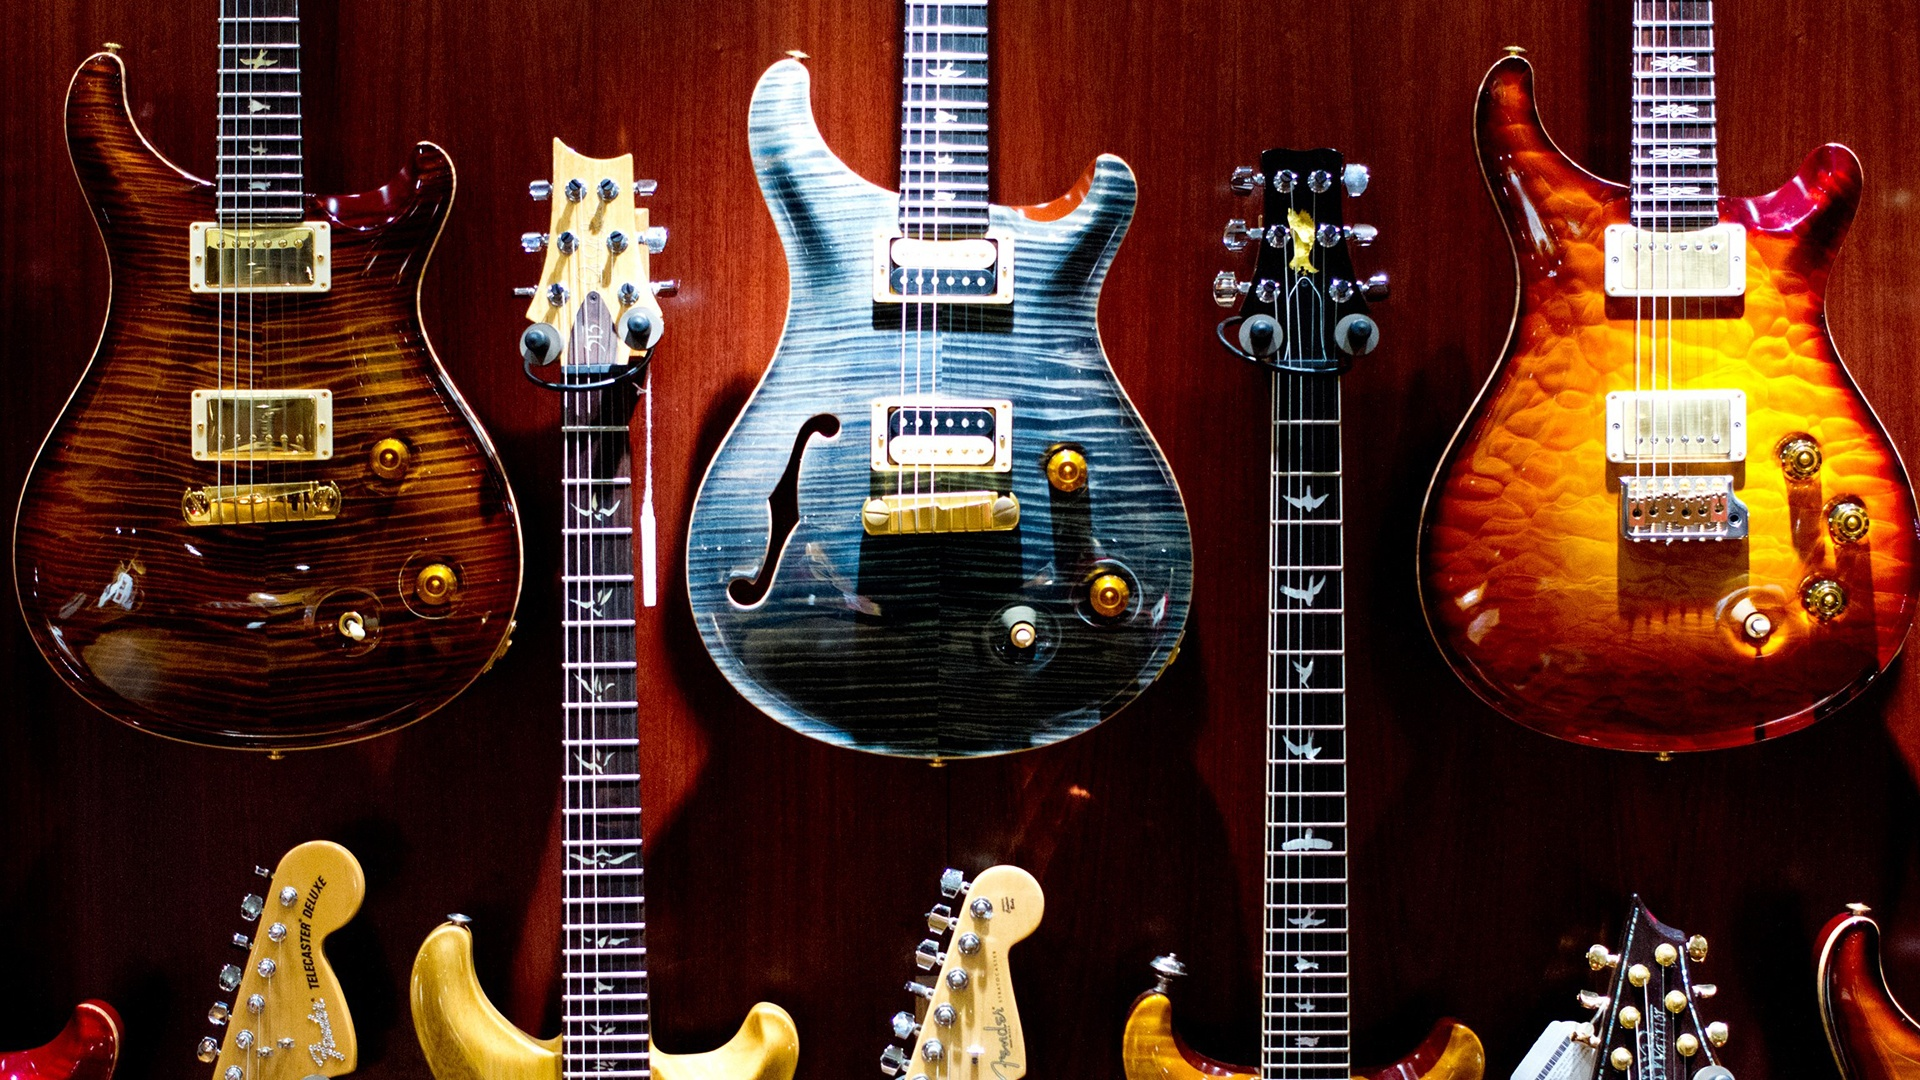 Cool guitar backgrounds 50 wallpapers adorable wallpapers - Cool guitar wallpaper ...